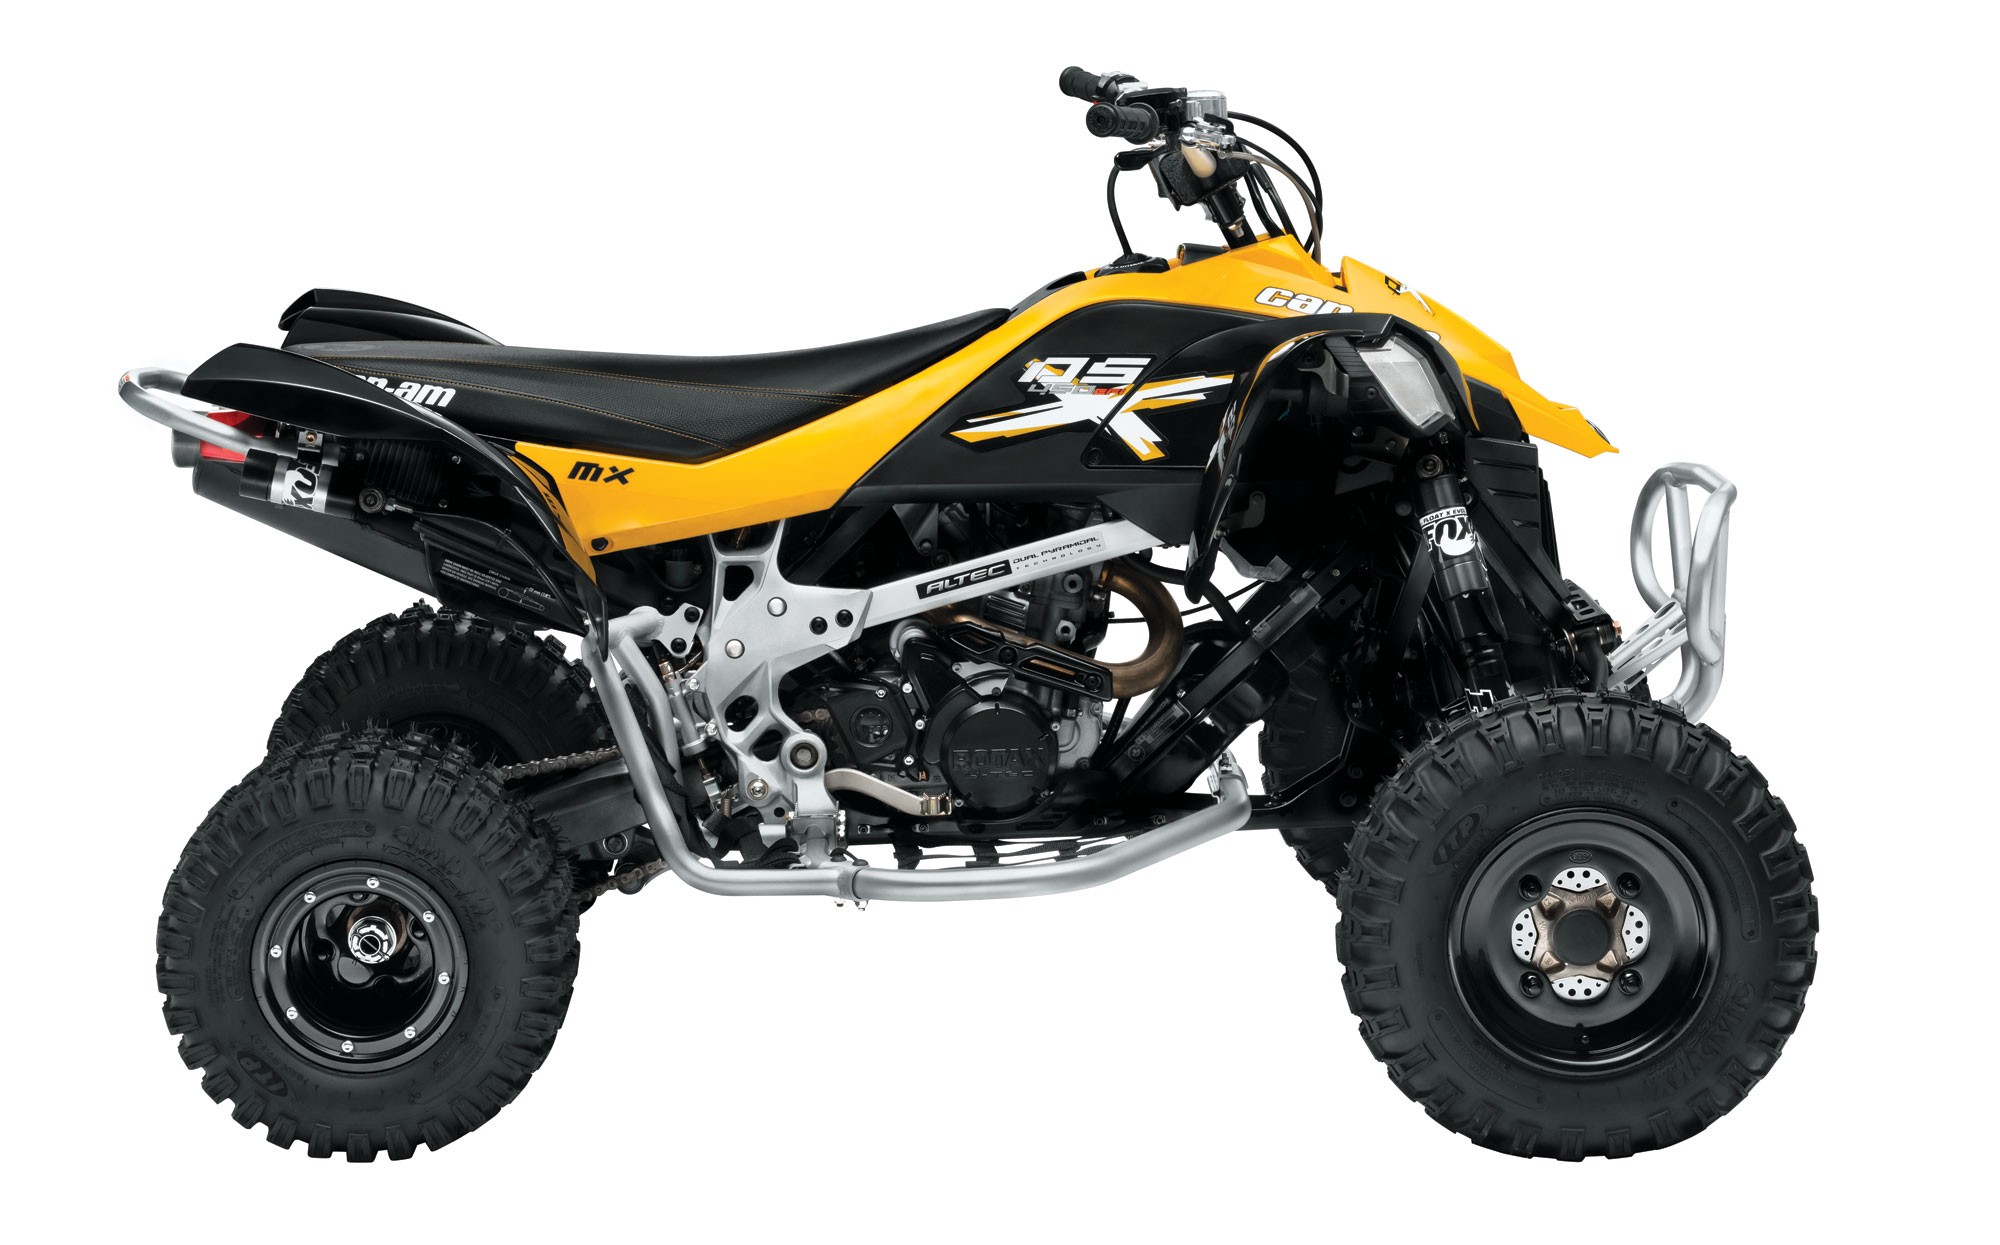 2013 Can-Am DS 450 Xmx Review